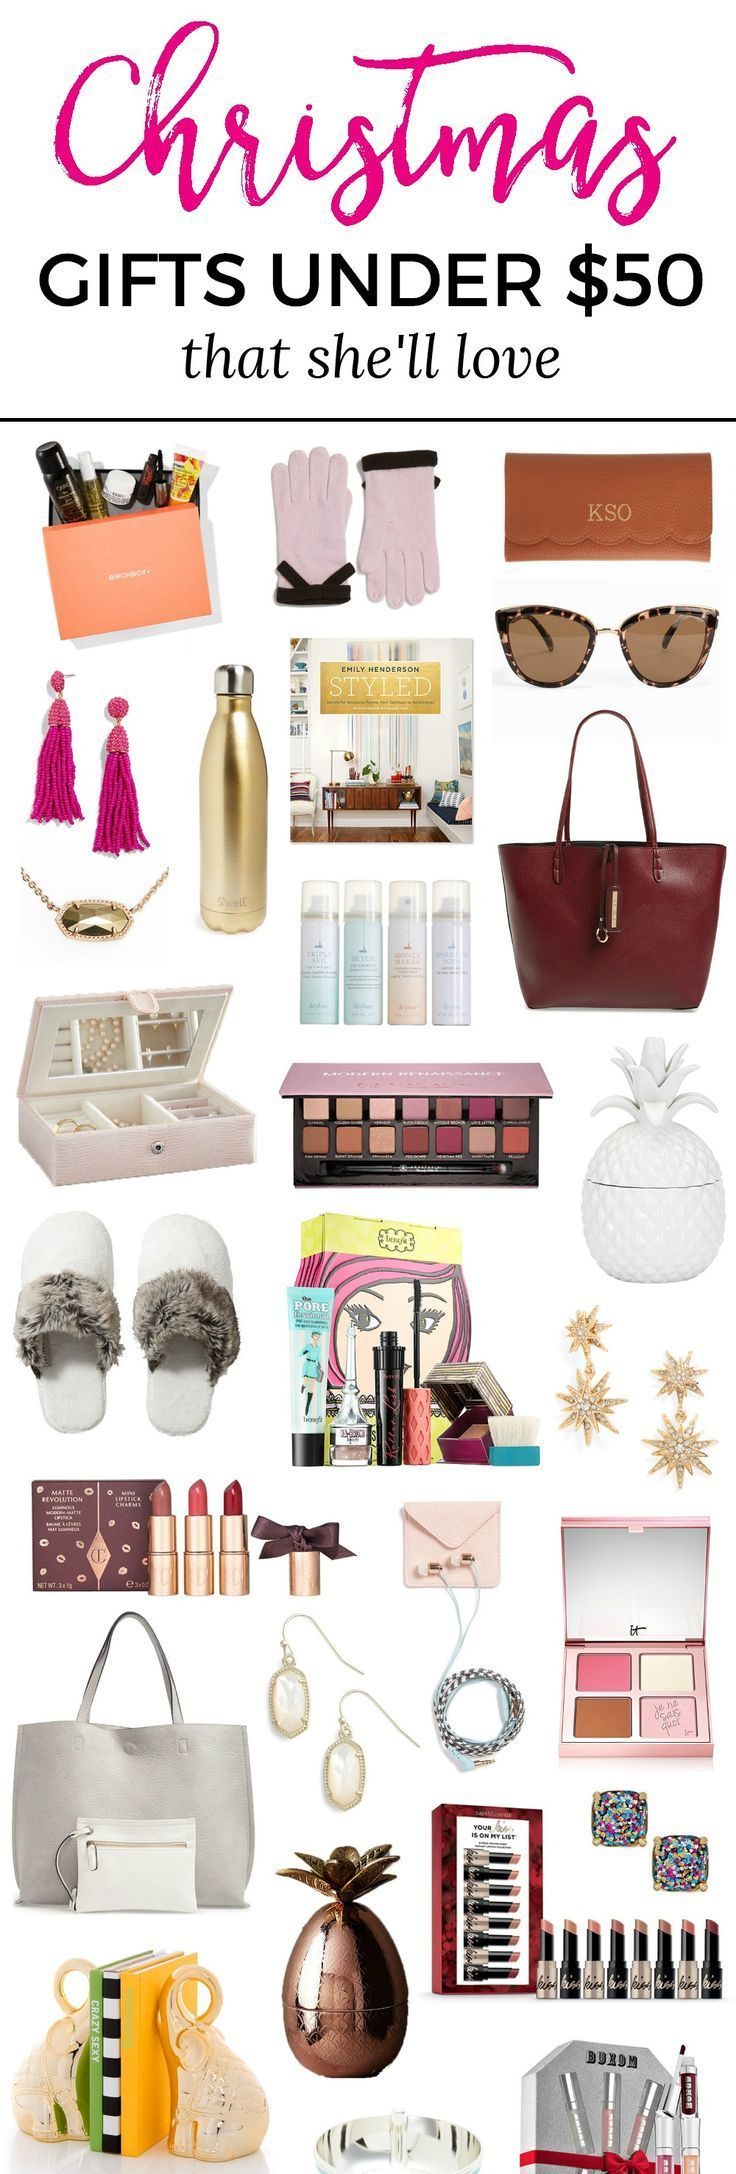 The Best Christmas Gift Ideas For Women Under 50 Gifts Ashley Brooke And Guide